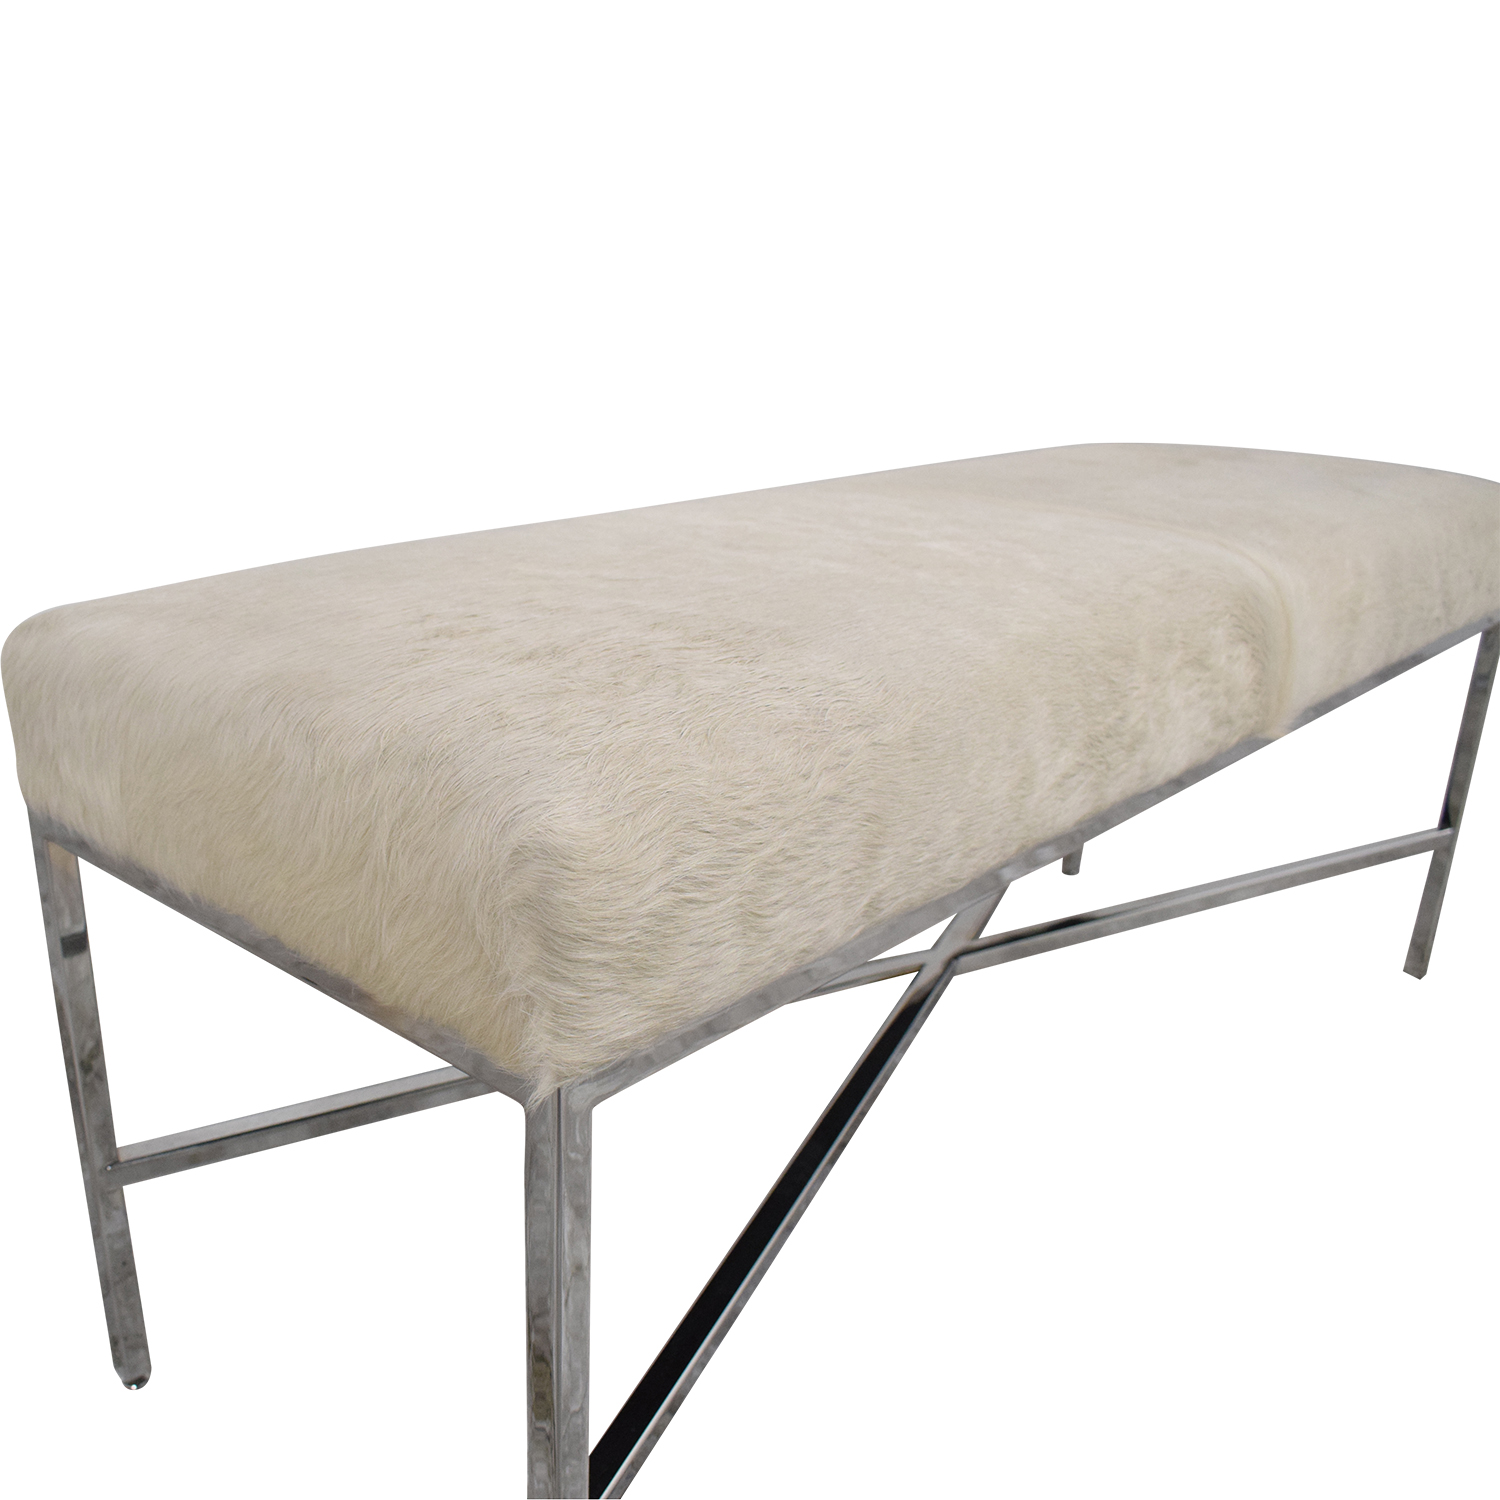 buy Outpost Original Outpost Original Metal Bench with Cowhide online